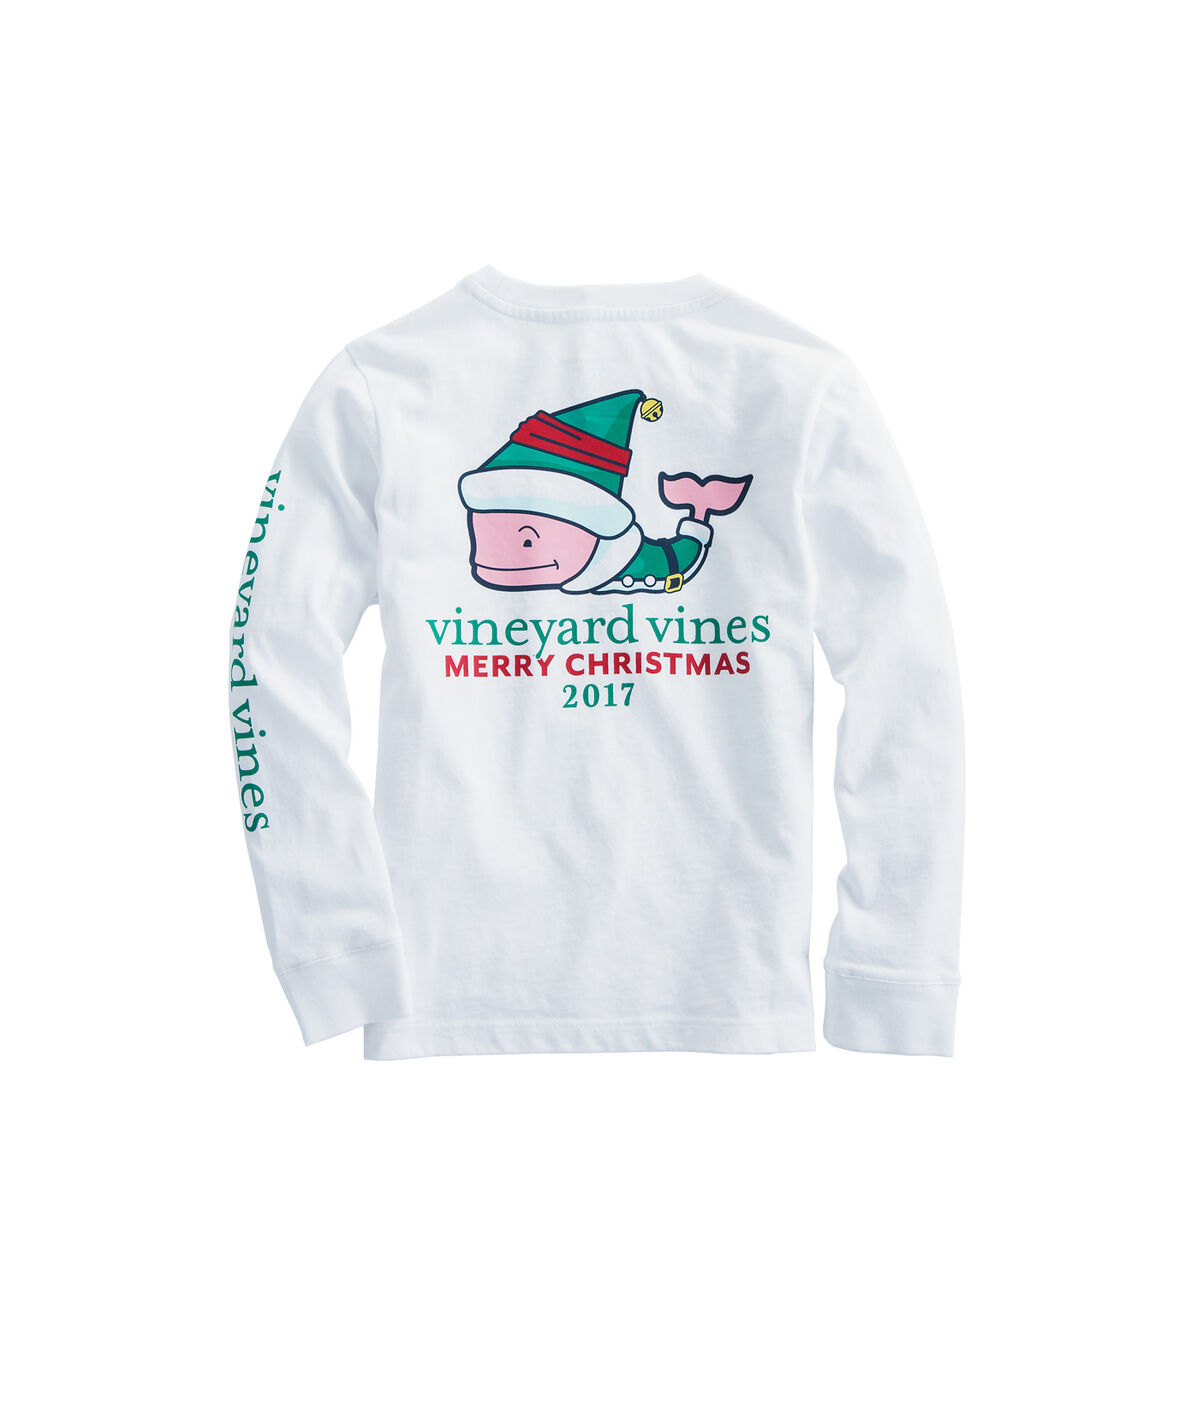 6db431e4 Vineyard Vines Christmas Shirt Womens